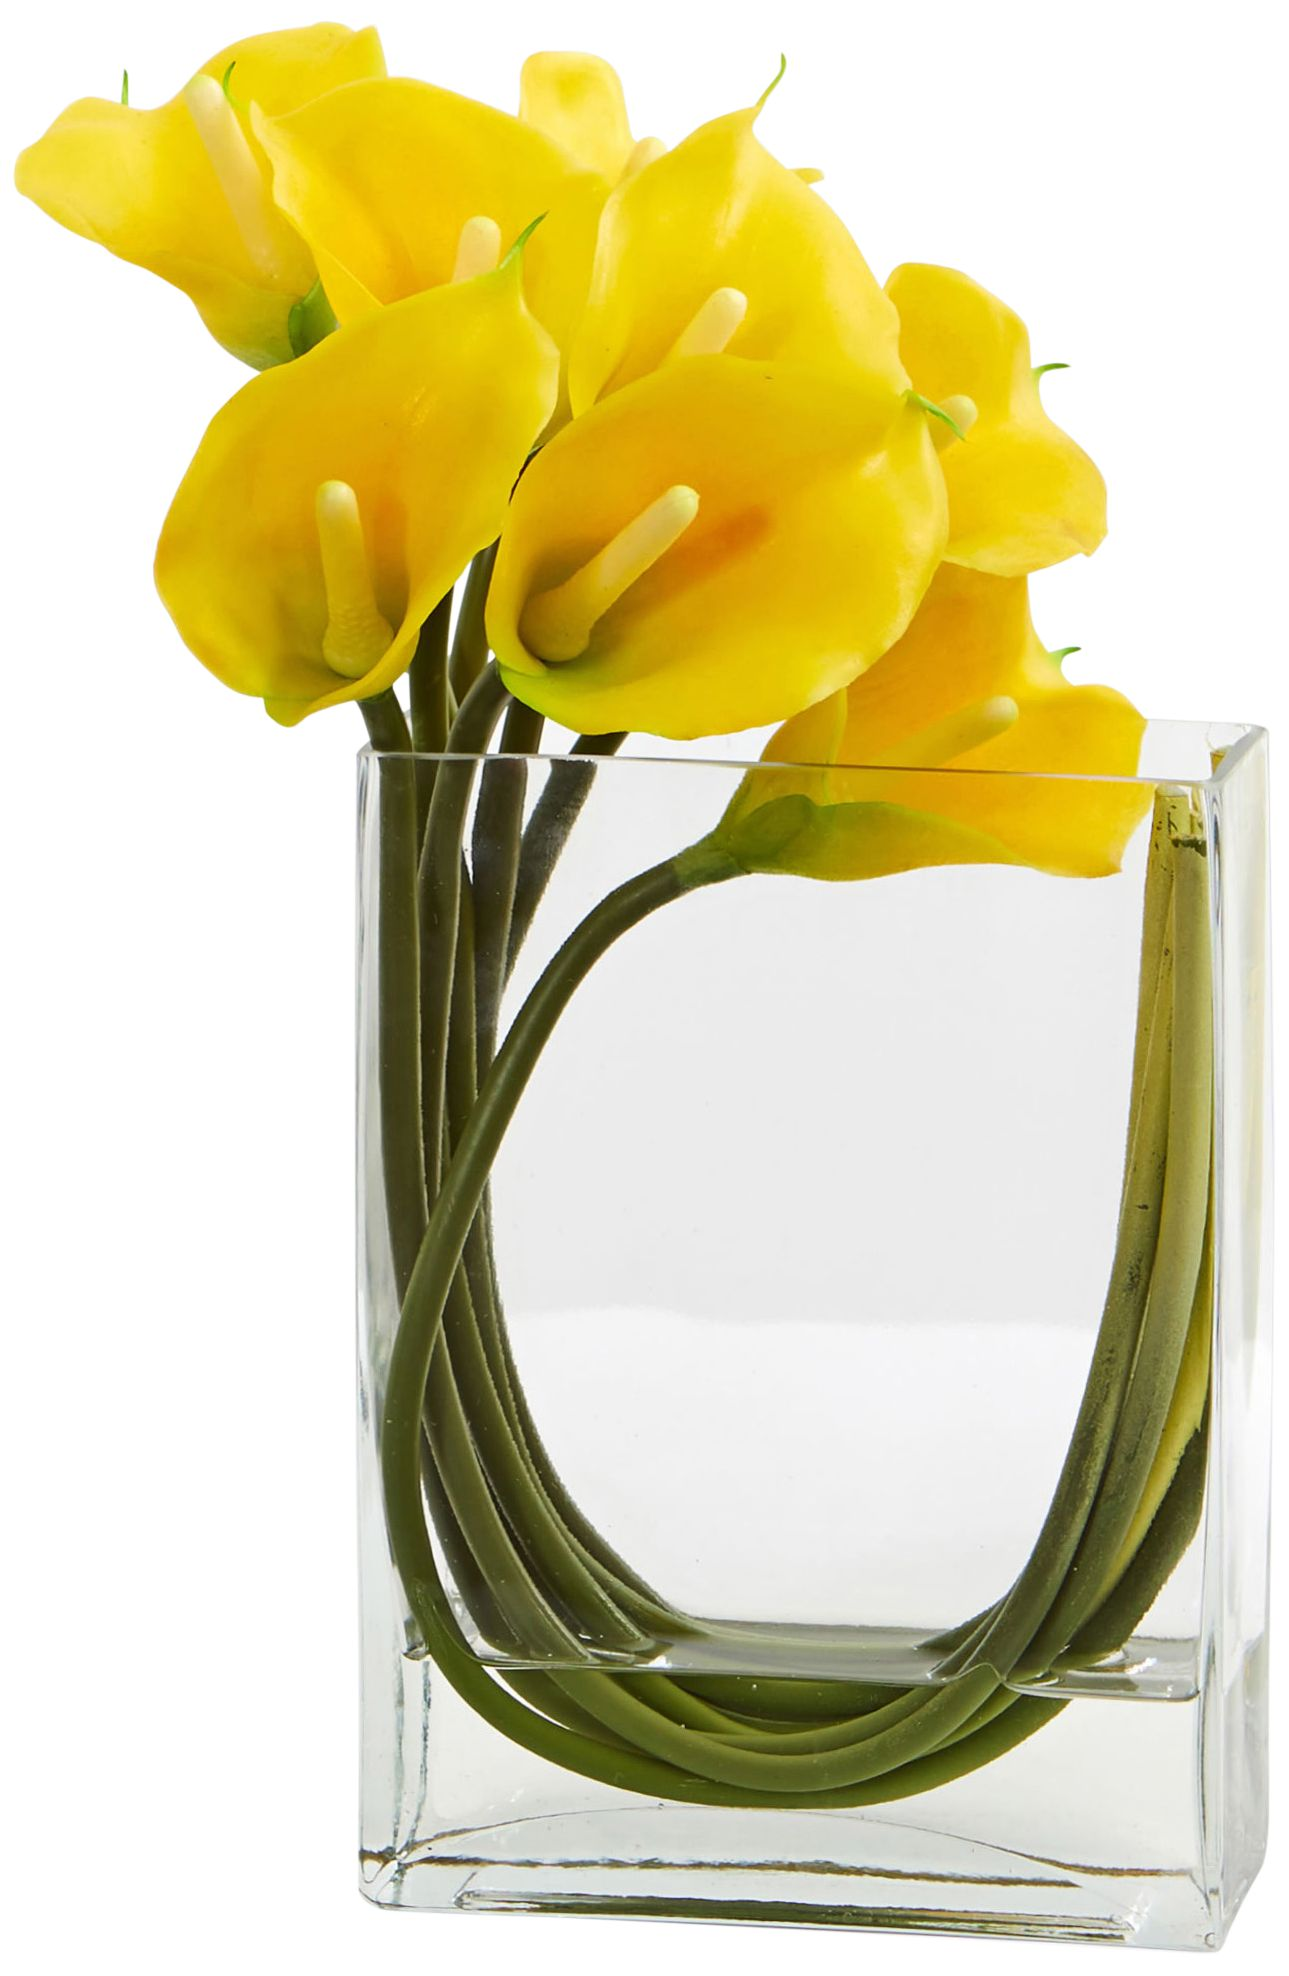 Yellow Calla Lily 12\u0026quot; Wide Faux Flowers in Glass Vase  sc 1 st  L&s Plus & Yellow Calla Lily 12\